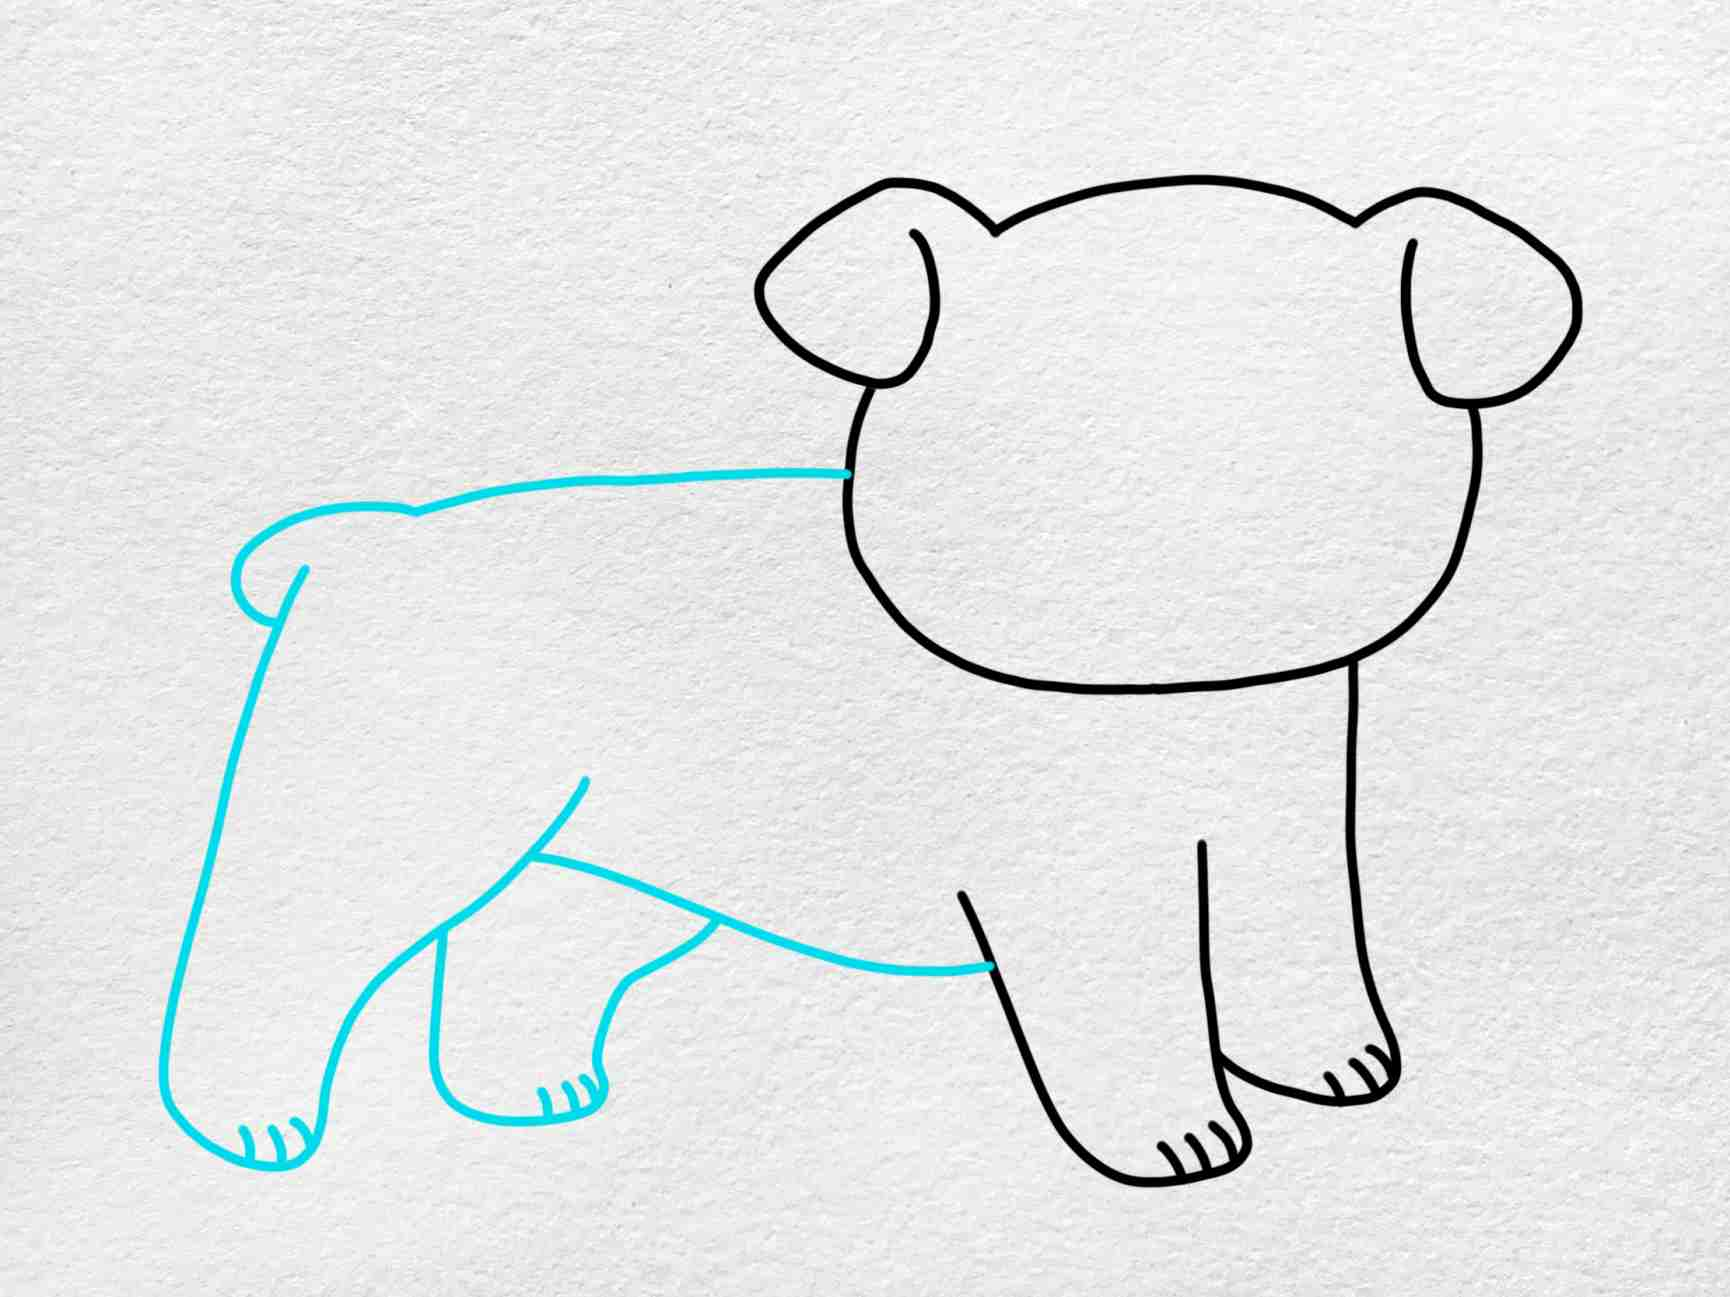 How To Draw A Bulldog: Step 4